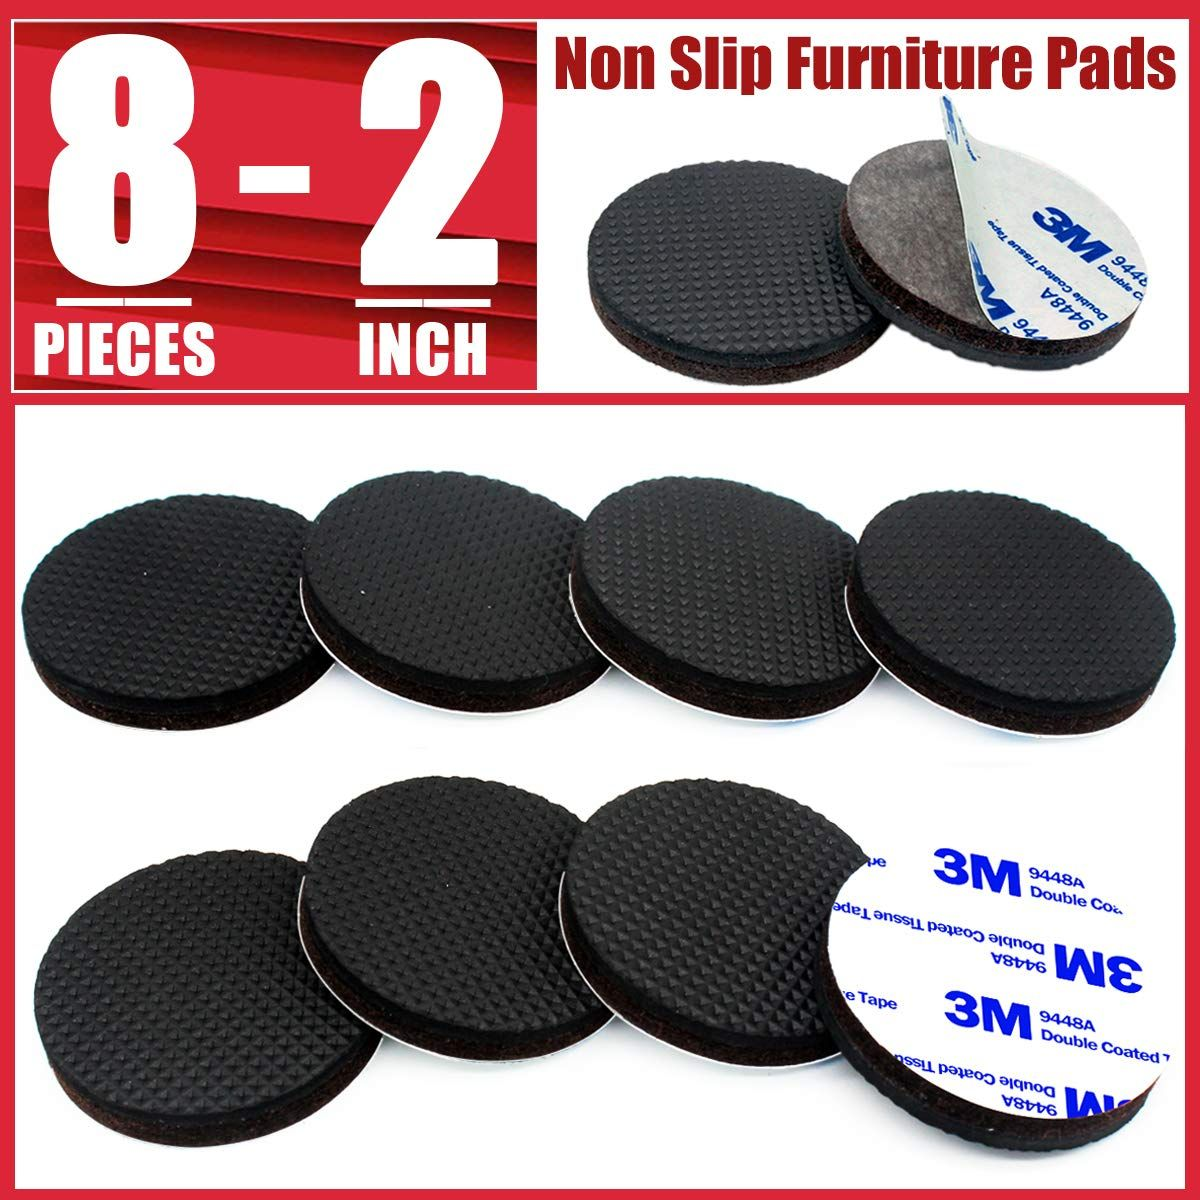 Non Slip Furniture Pads 8 Pcs 2a Furniture Grippers For Hardwood